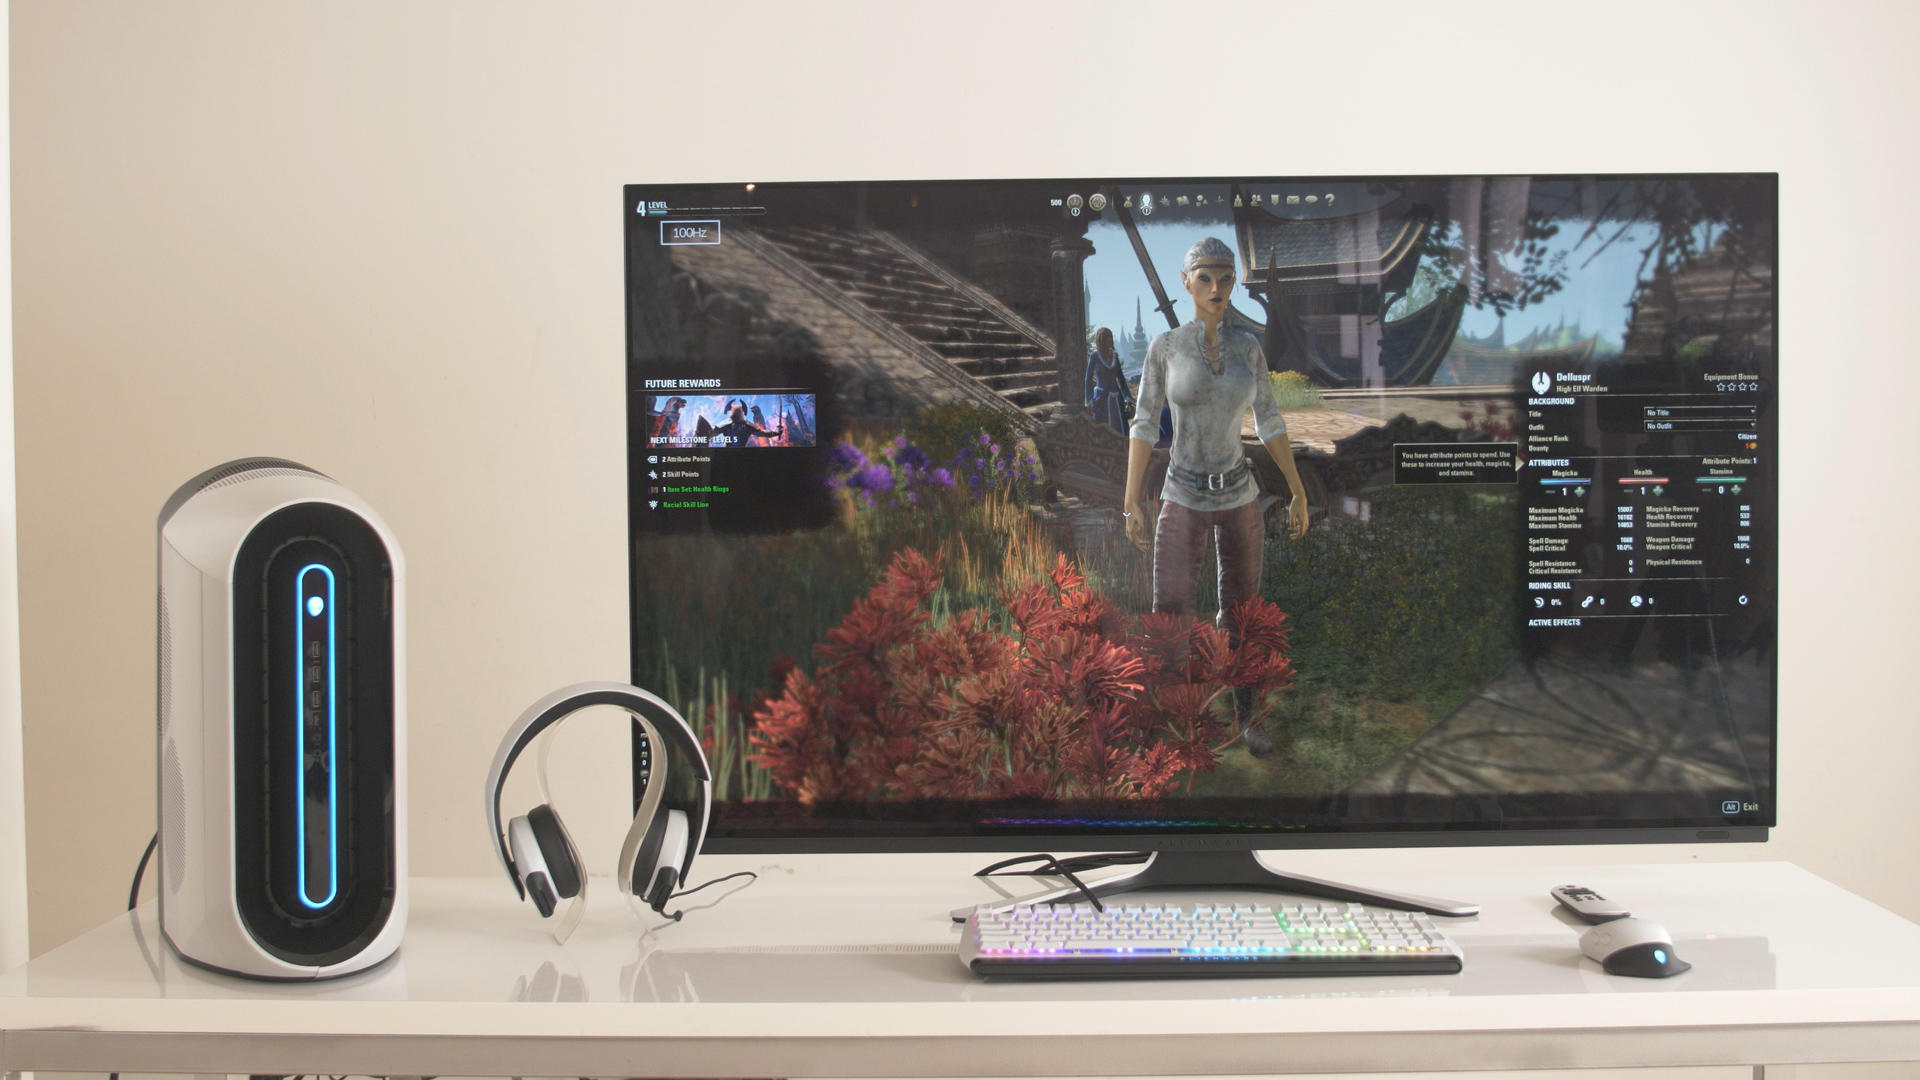 Video: Alienware's $4,000 55-inch OLED gaming monitor will land soon